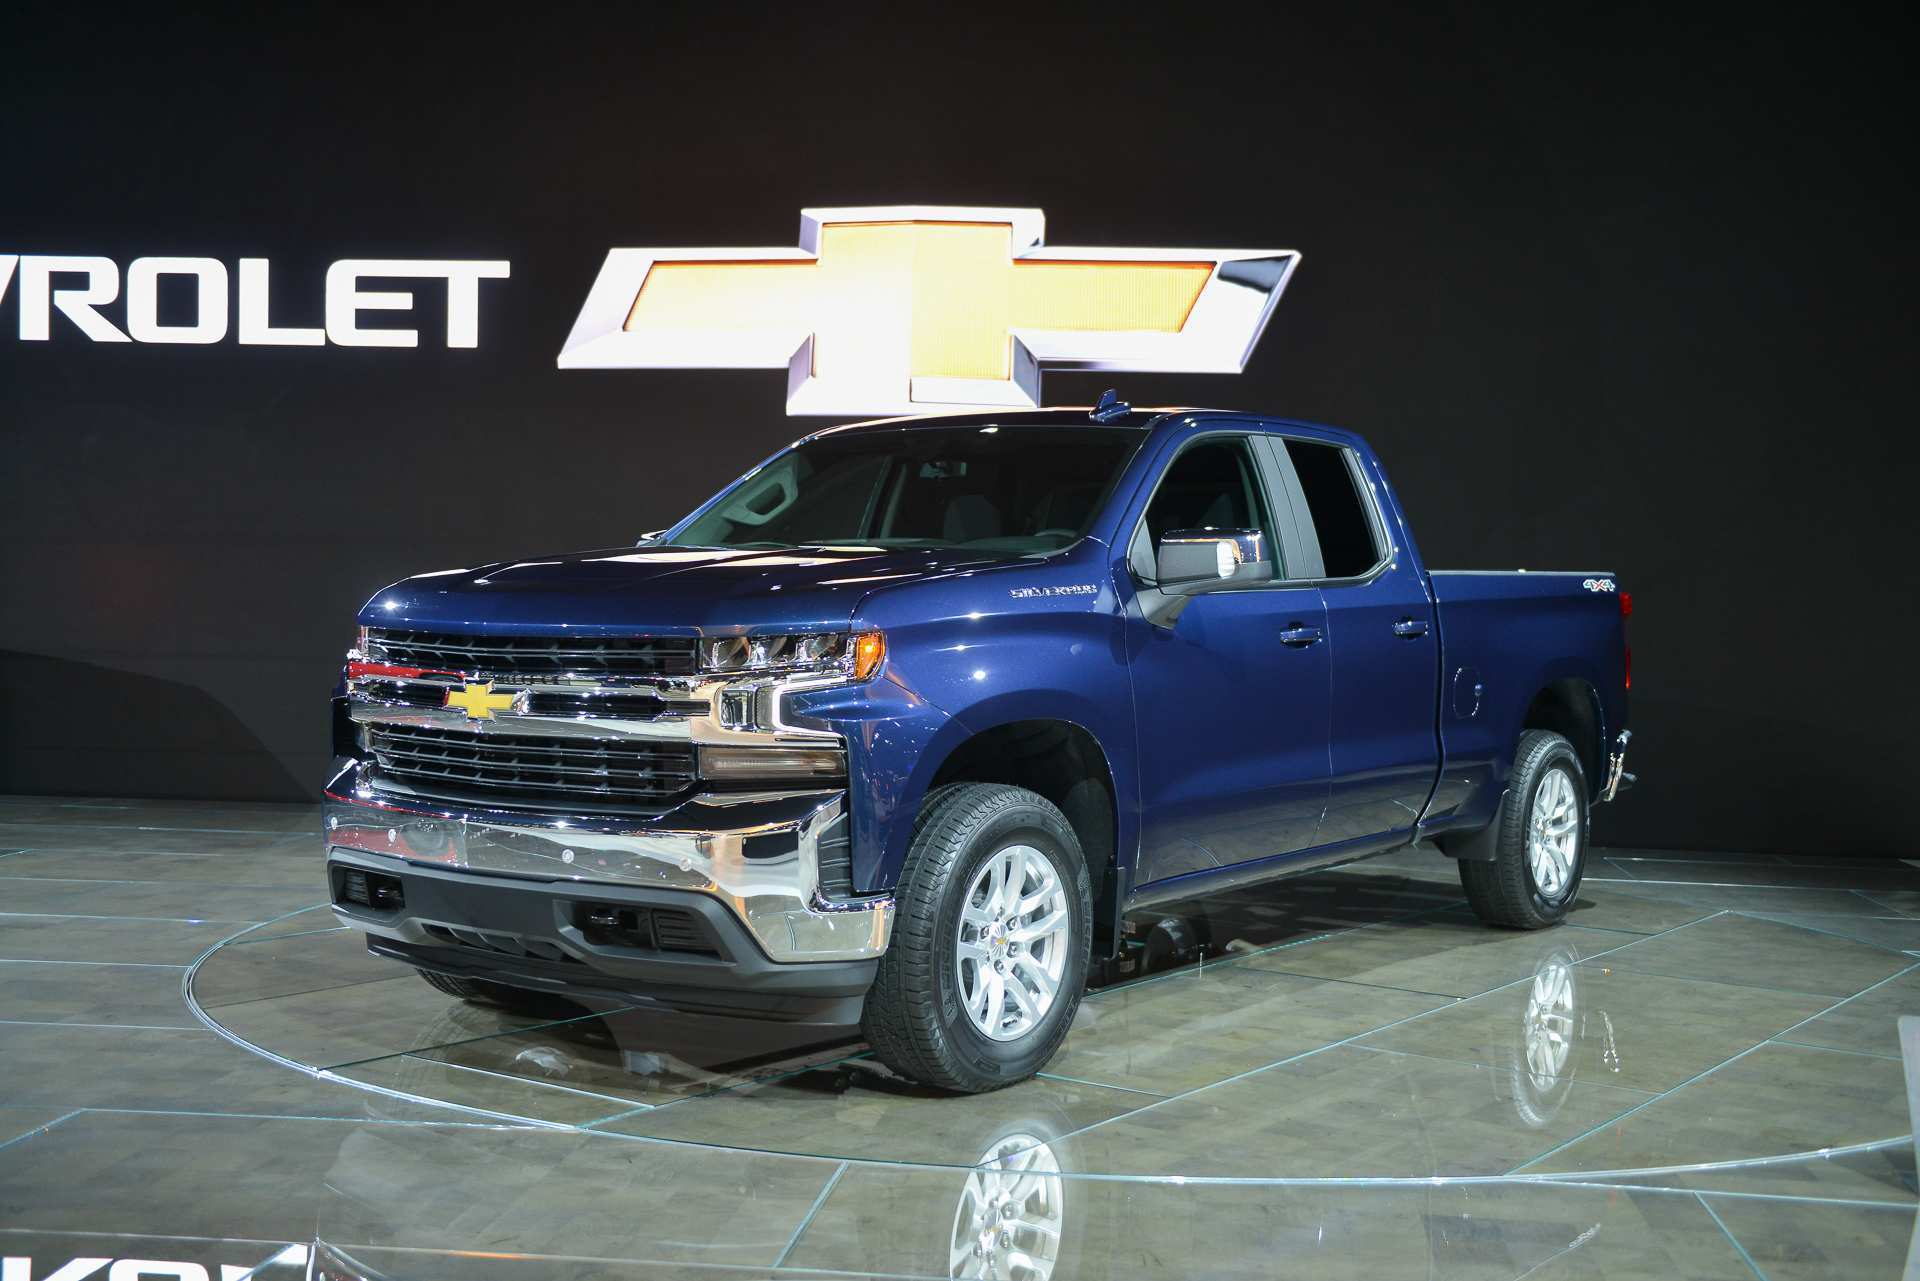 49 New 2019 Chevrolet Pickup First Drive by 2019 Chevrolet Pickup